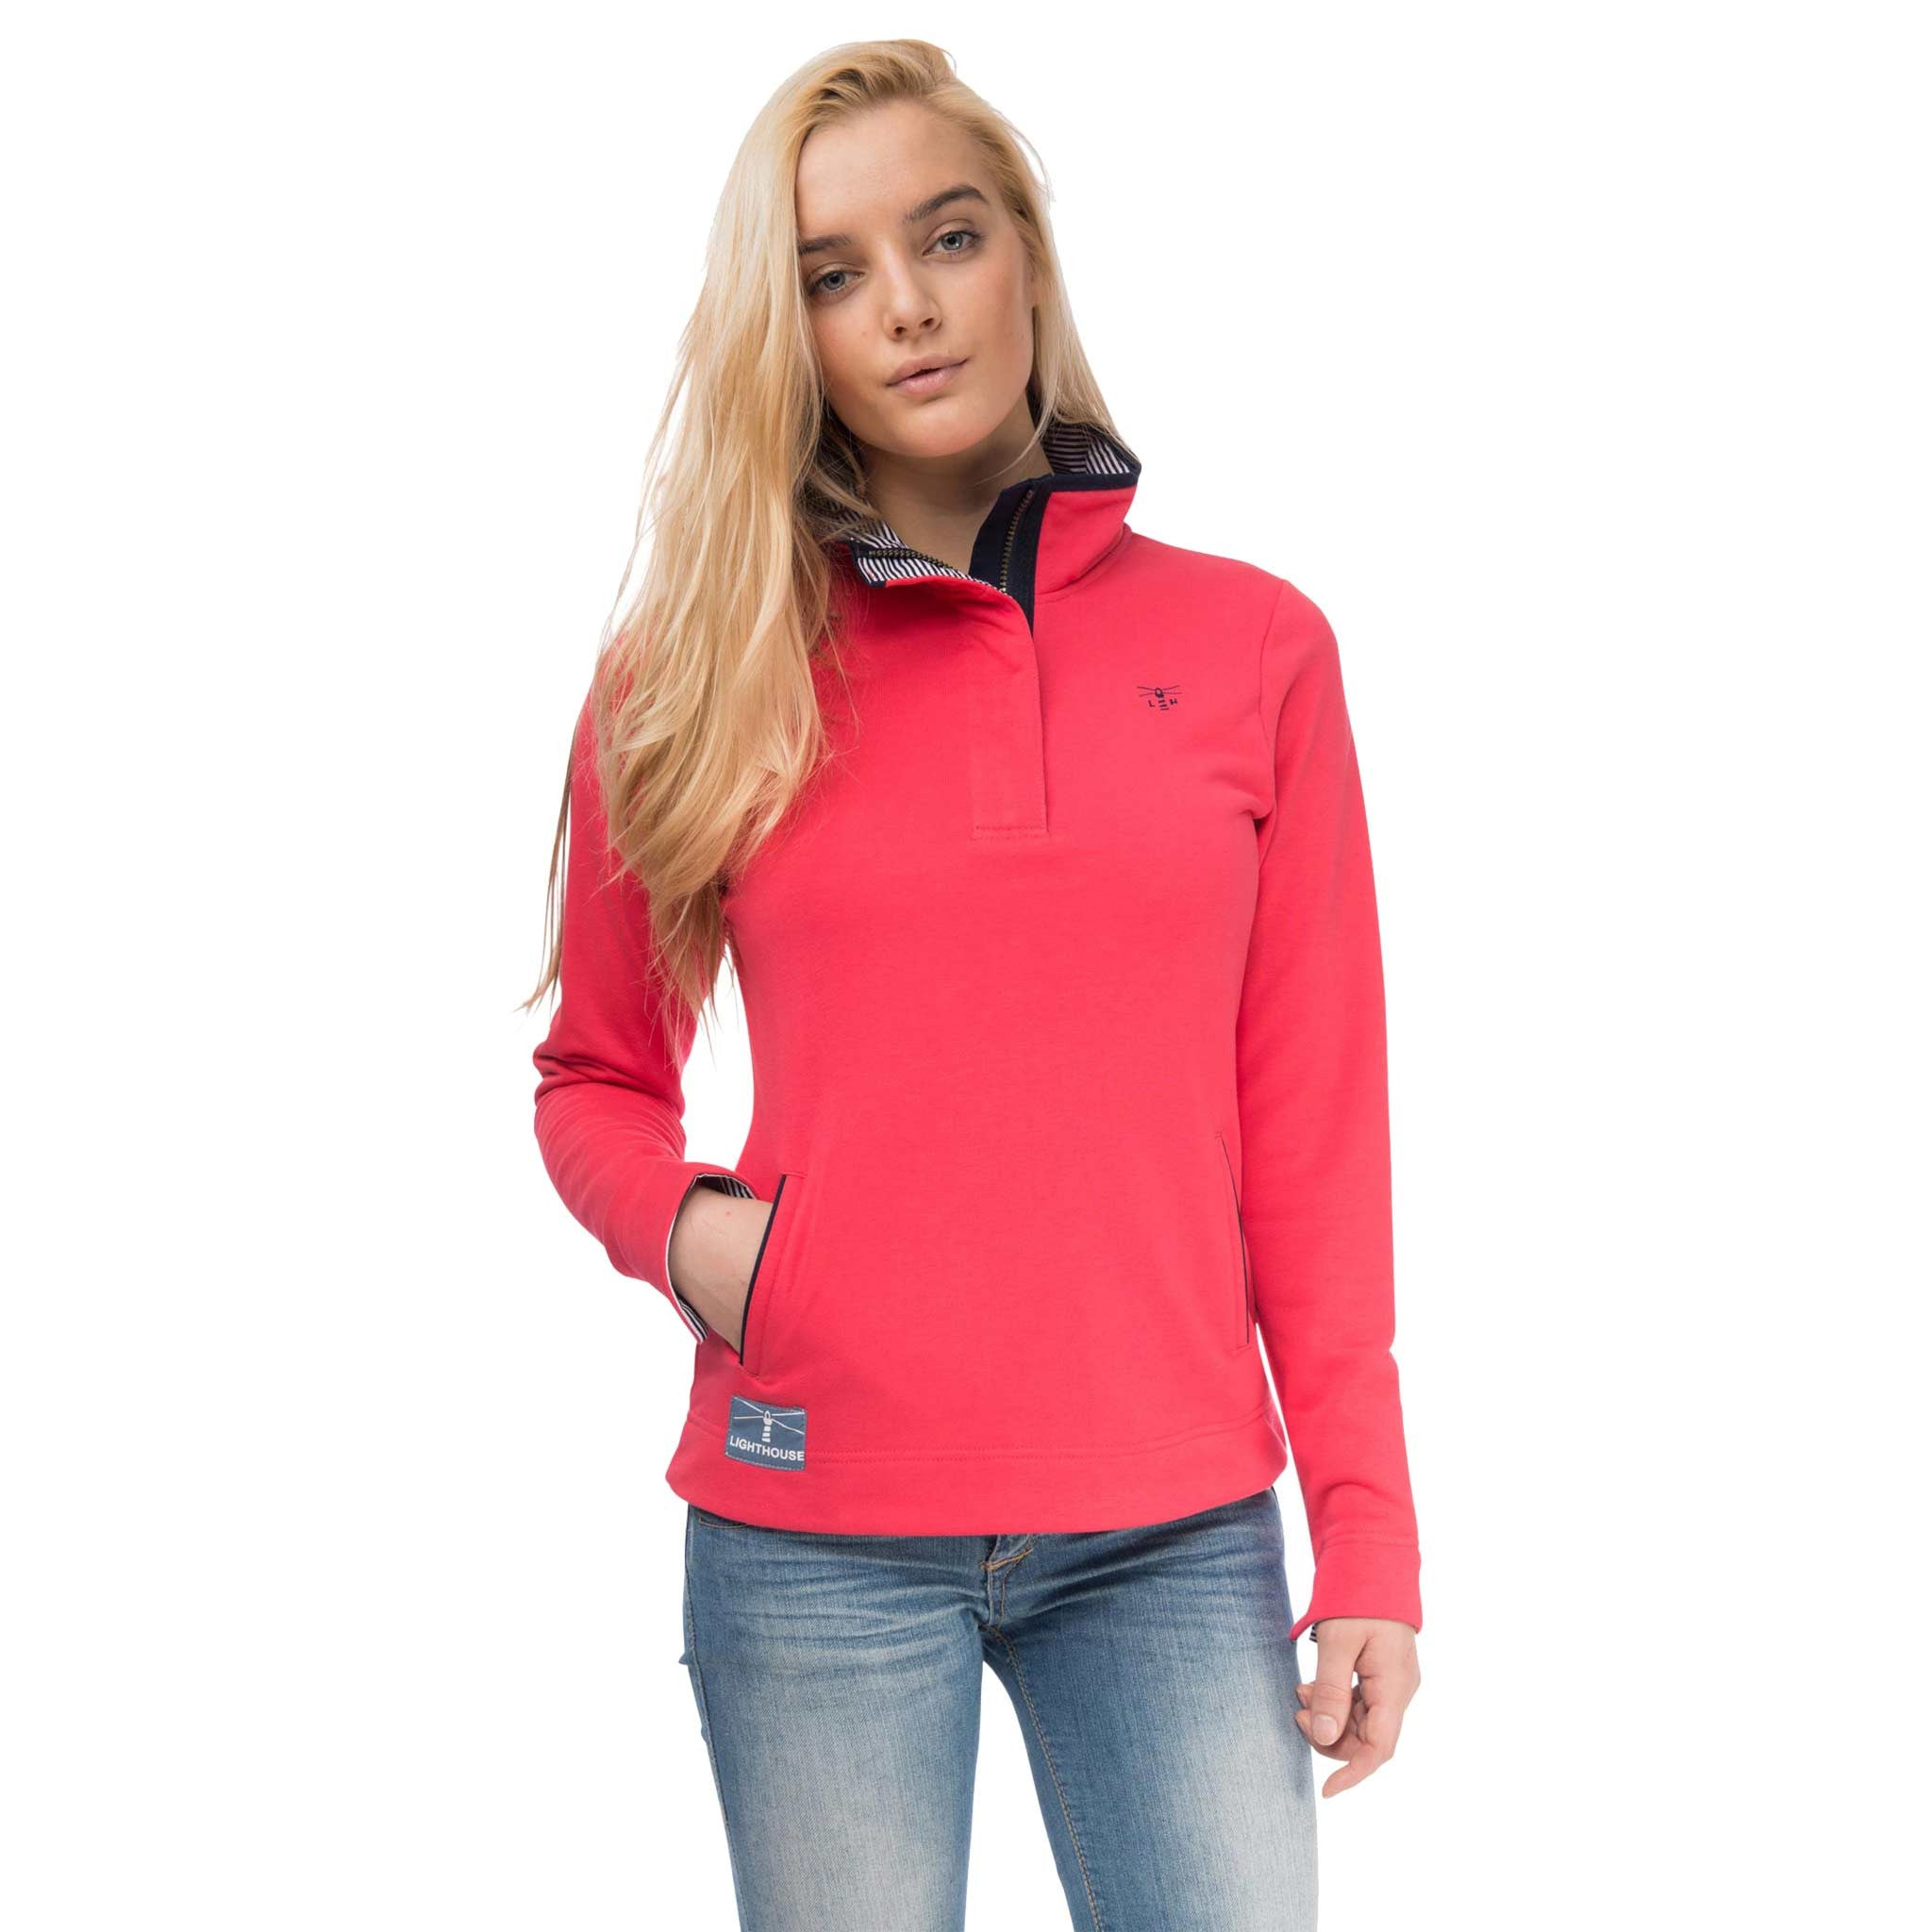 Haven Womens Half Zip Sweatshirt in Watermelon Red, Modelled Front View | Lighthouse